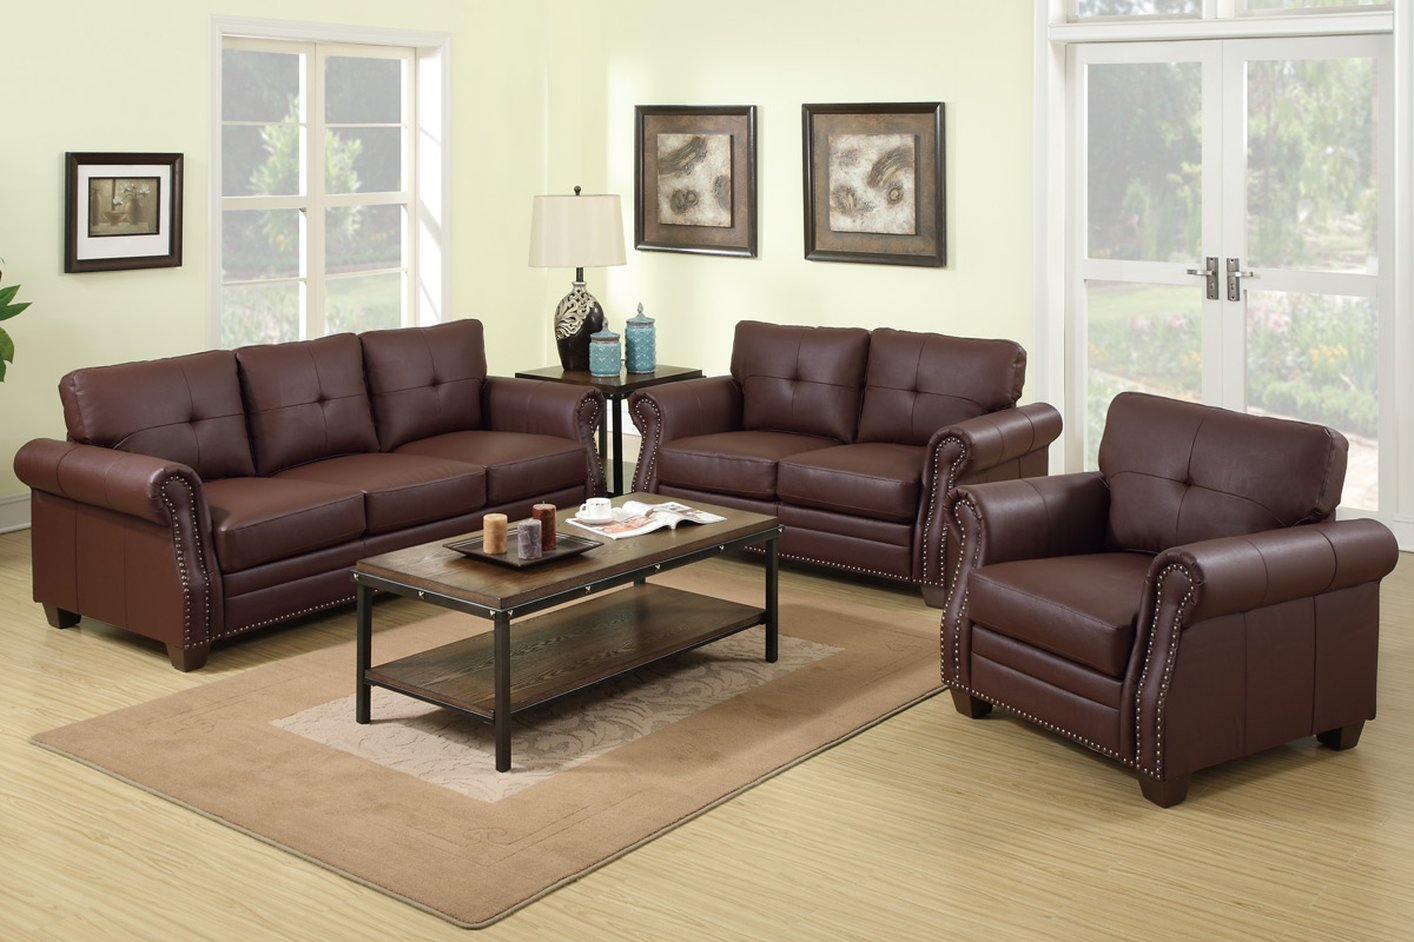 Poundex baron f7799 brown leather sofa and loveseat set for Leather sofa set